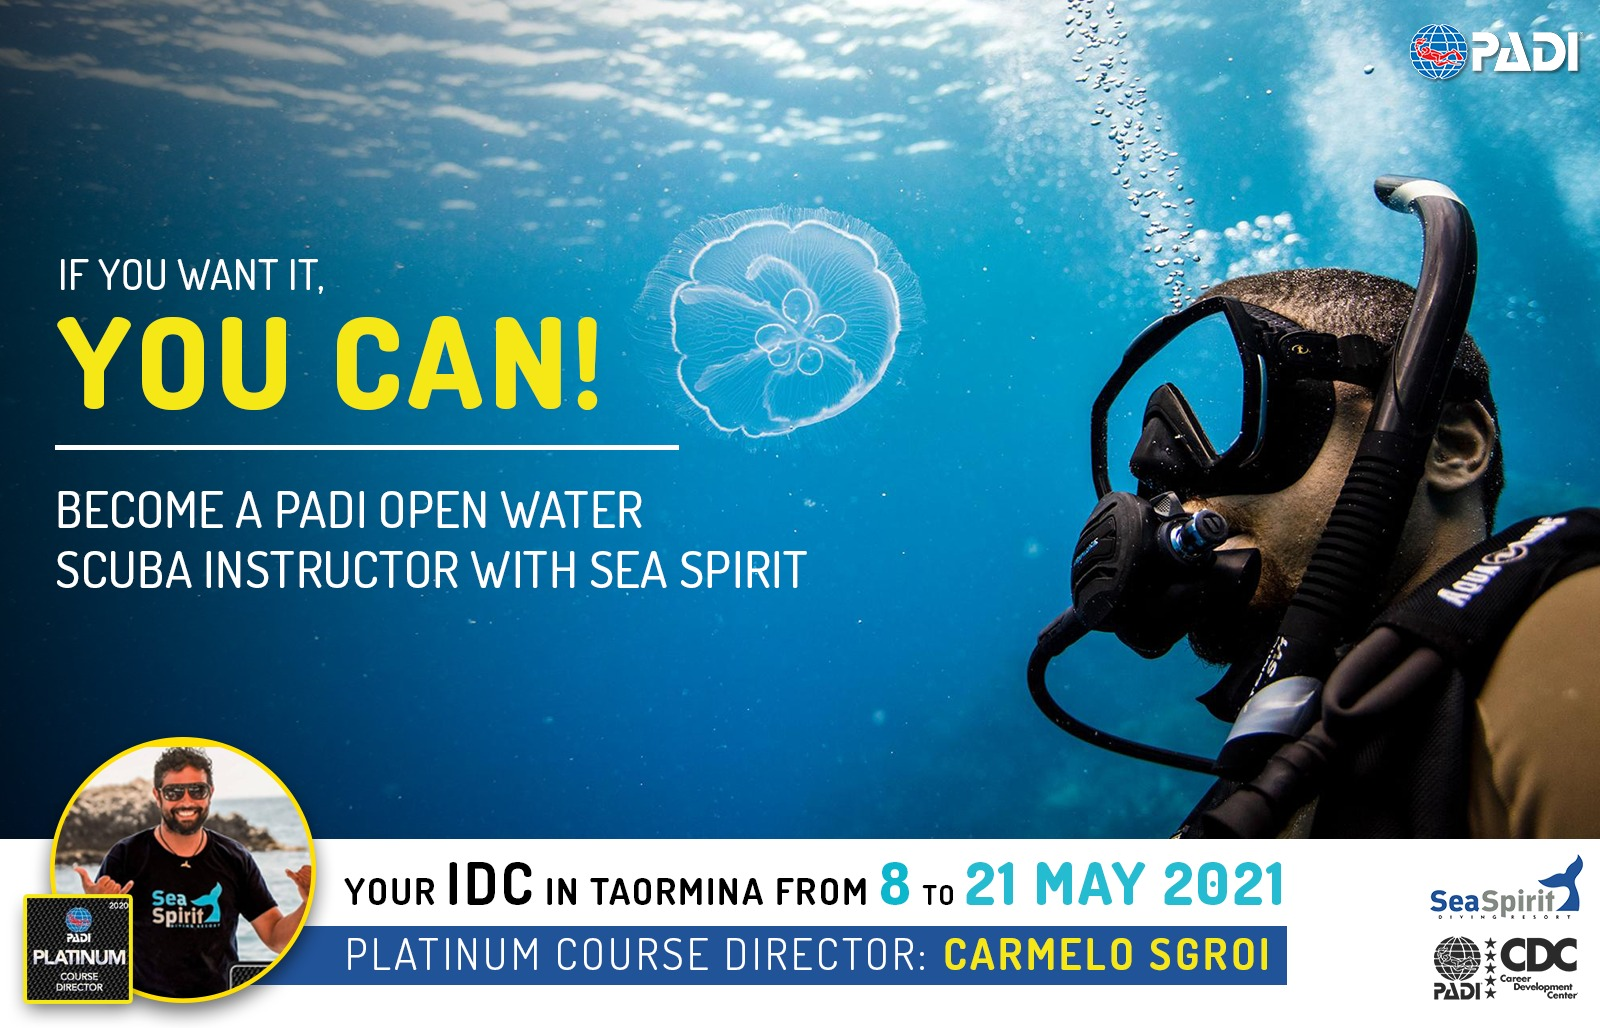 TOP 10 Reasons to join our IDC at Sea Spirit Diving Academy in Taormina, Sicily